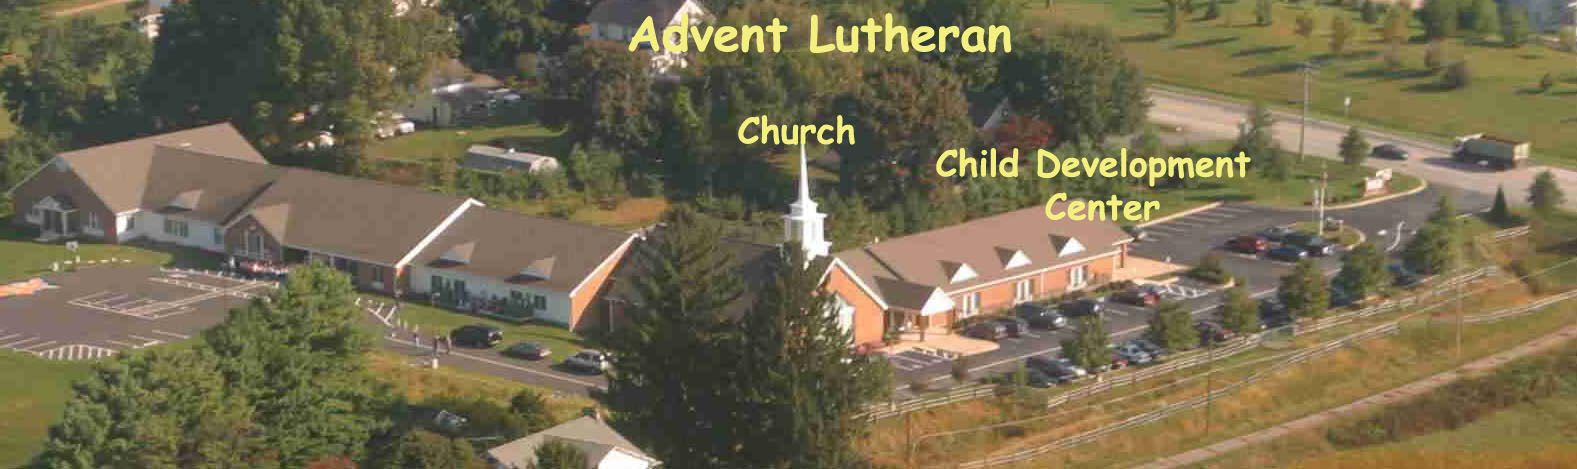 Advent Lutheran Church, Forest Hill, MD